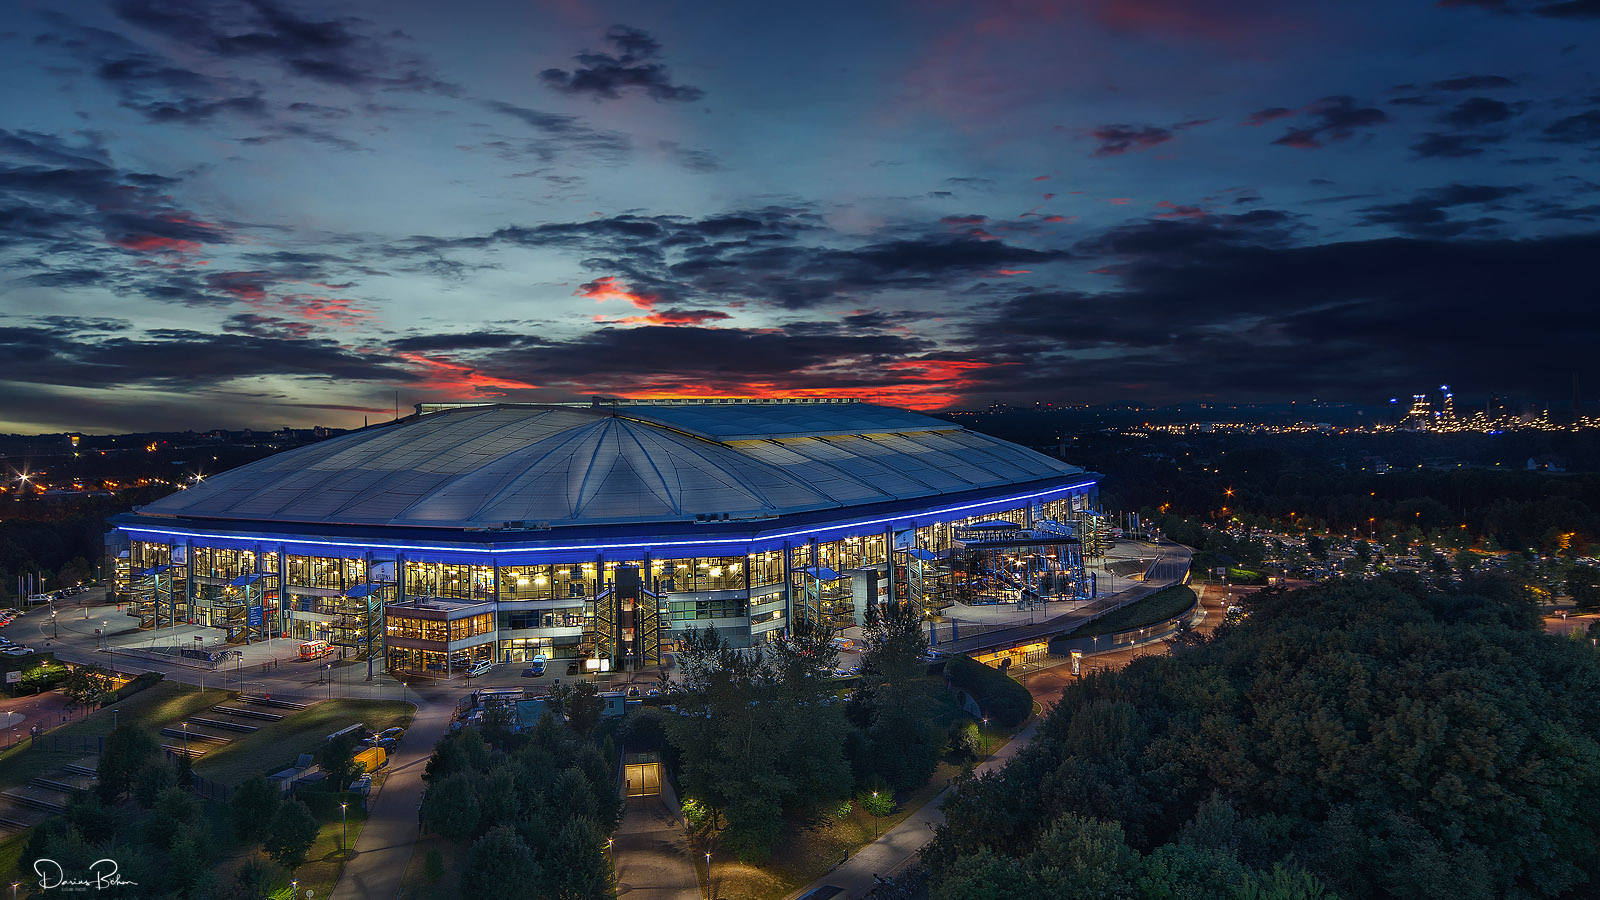 veltins arena gelsenkirchen foto bild architektur architektur bei nacht architektur bei. Black Bedroom Furniture Sets. Home Design Ideas